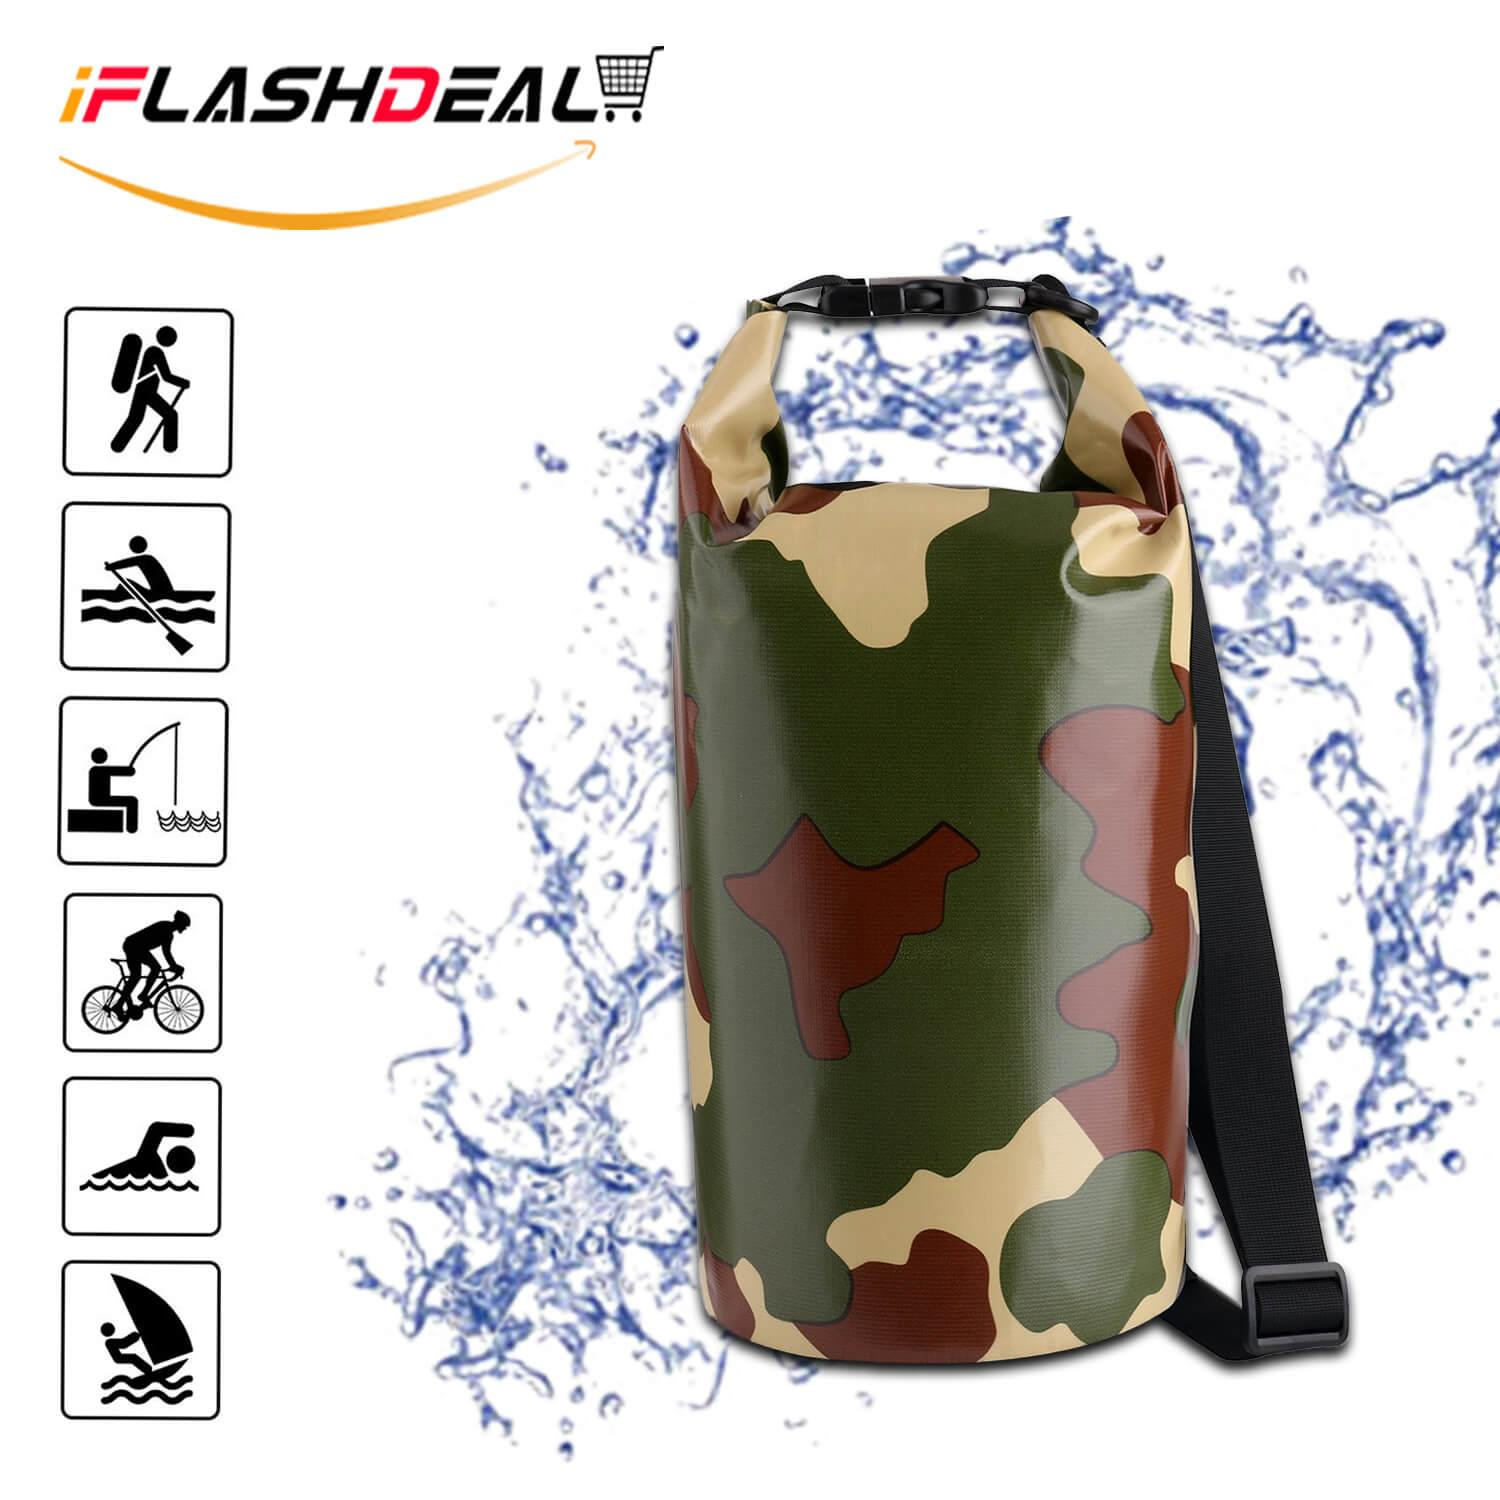 Iflashdeal Waterproof Dry Bag, Camouflage Dry Compression Sack With Zip Lock Seals & Detachable Shoulder Strap For Swimming, Boating, Kayak, Rafting, Hiking By Iflashdeal.